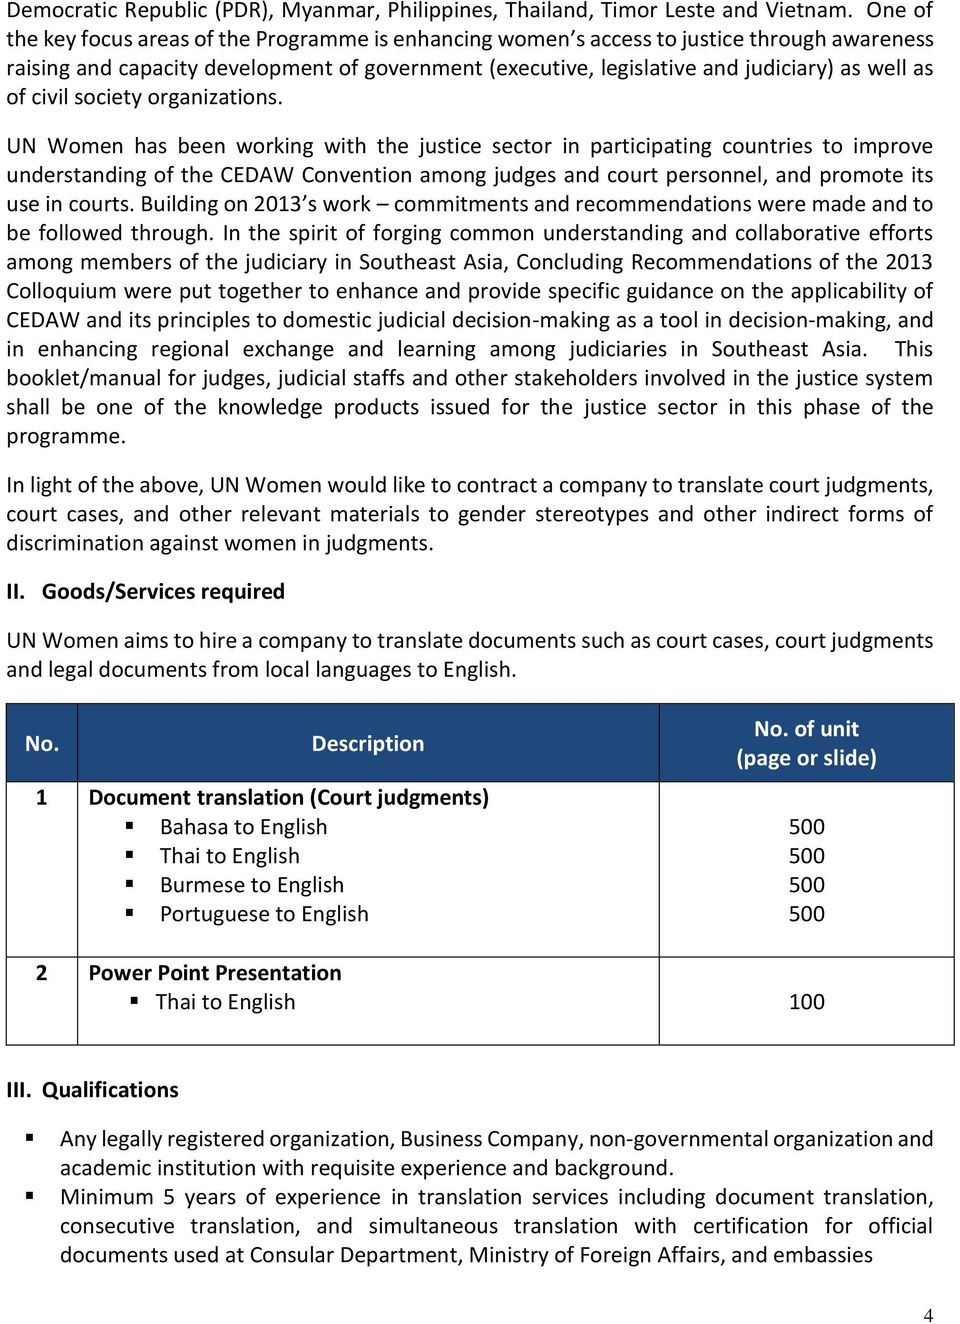 REQUEST FOR QUOTATION (RFQ) Translation Services - PDF